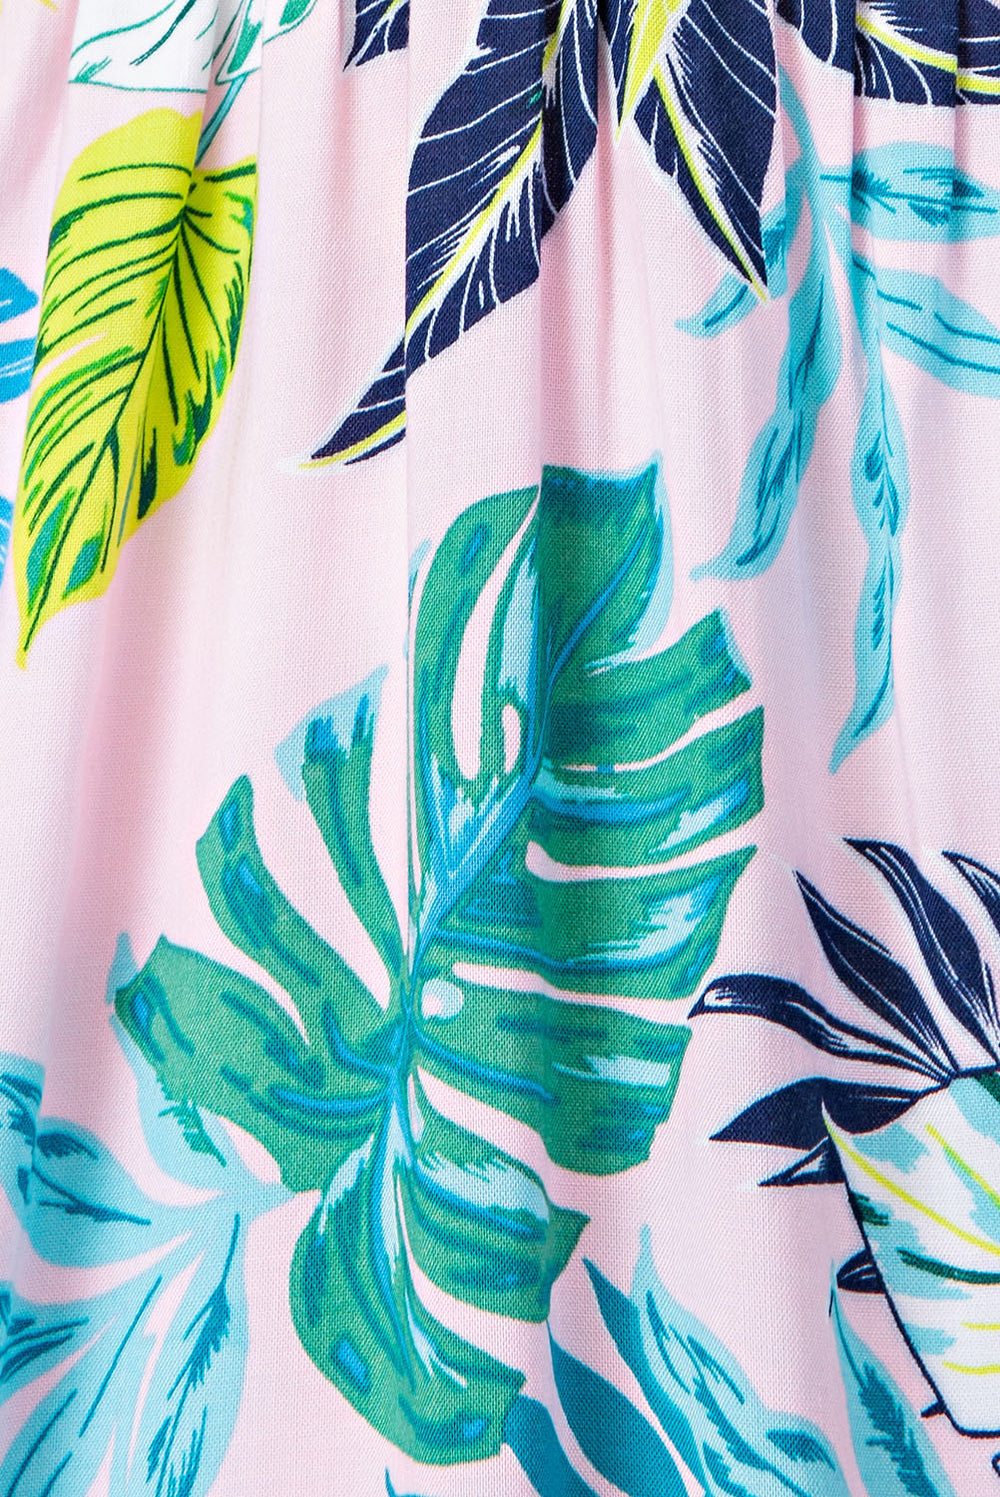 Natalie Midi Dress With Tropical Print Button Down In Pink-Green Siin Bees